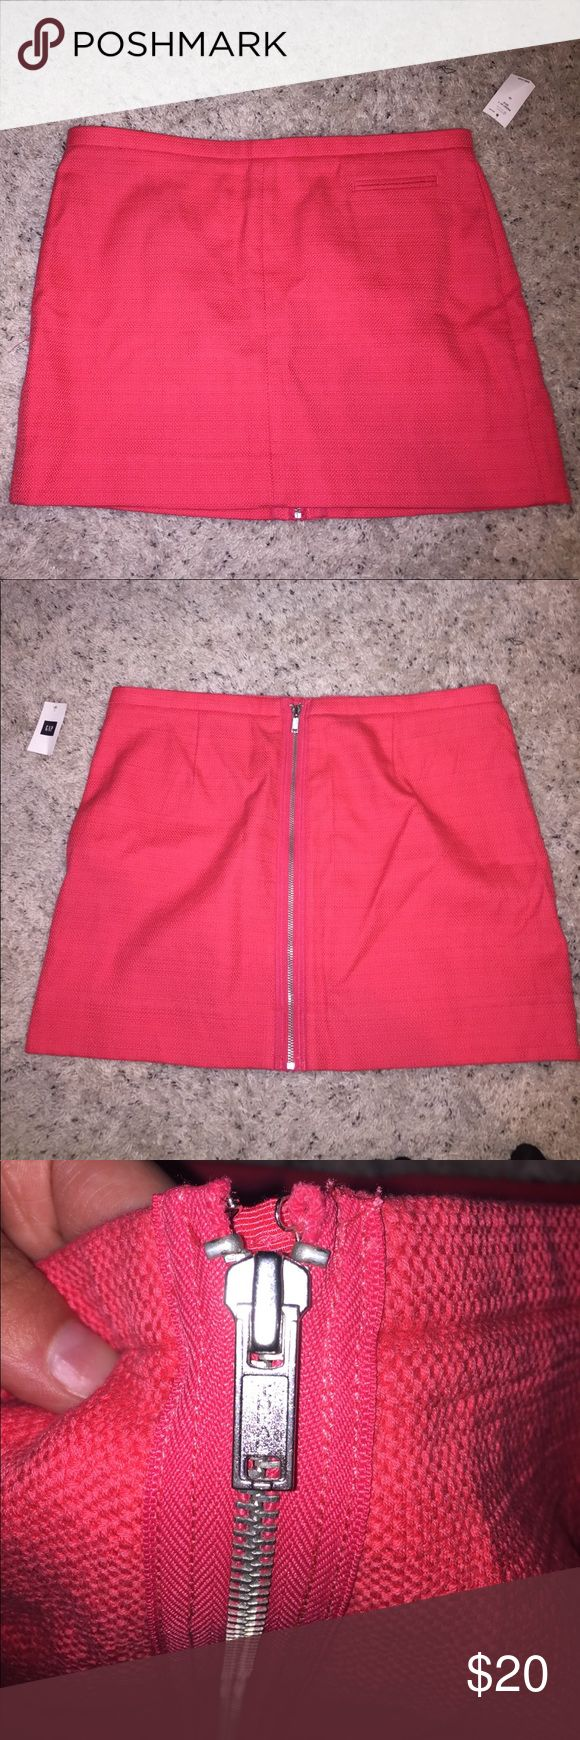 Gap skirt NWT pink zipper embellished gap skirt. Size 10. Perfect for summer. GAP Skirts